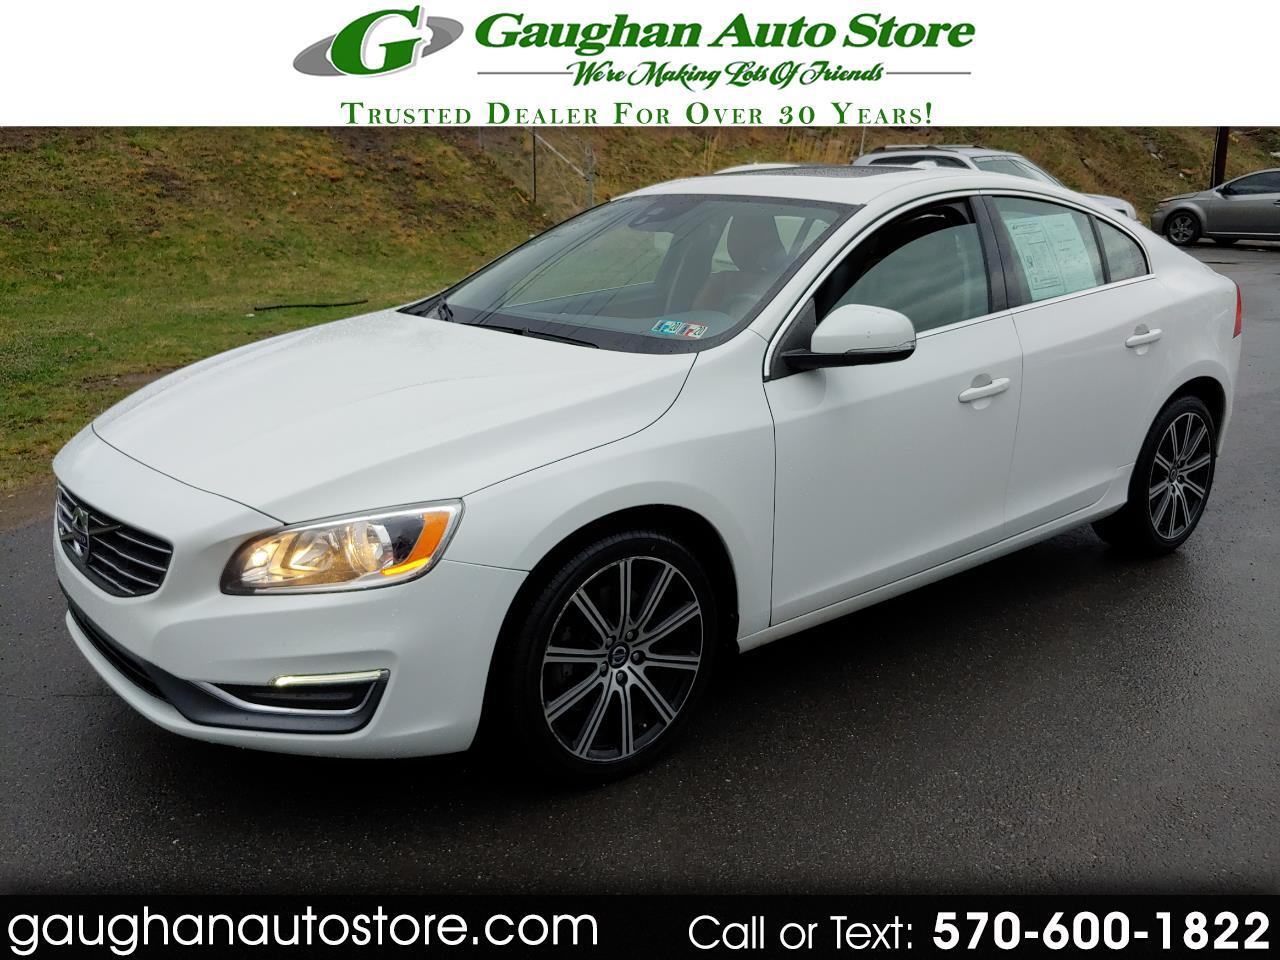 2014 Volvo S60 4dr sedan T5 AWD  Moonroof